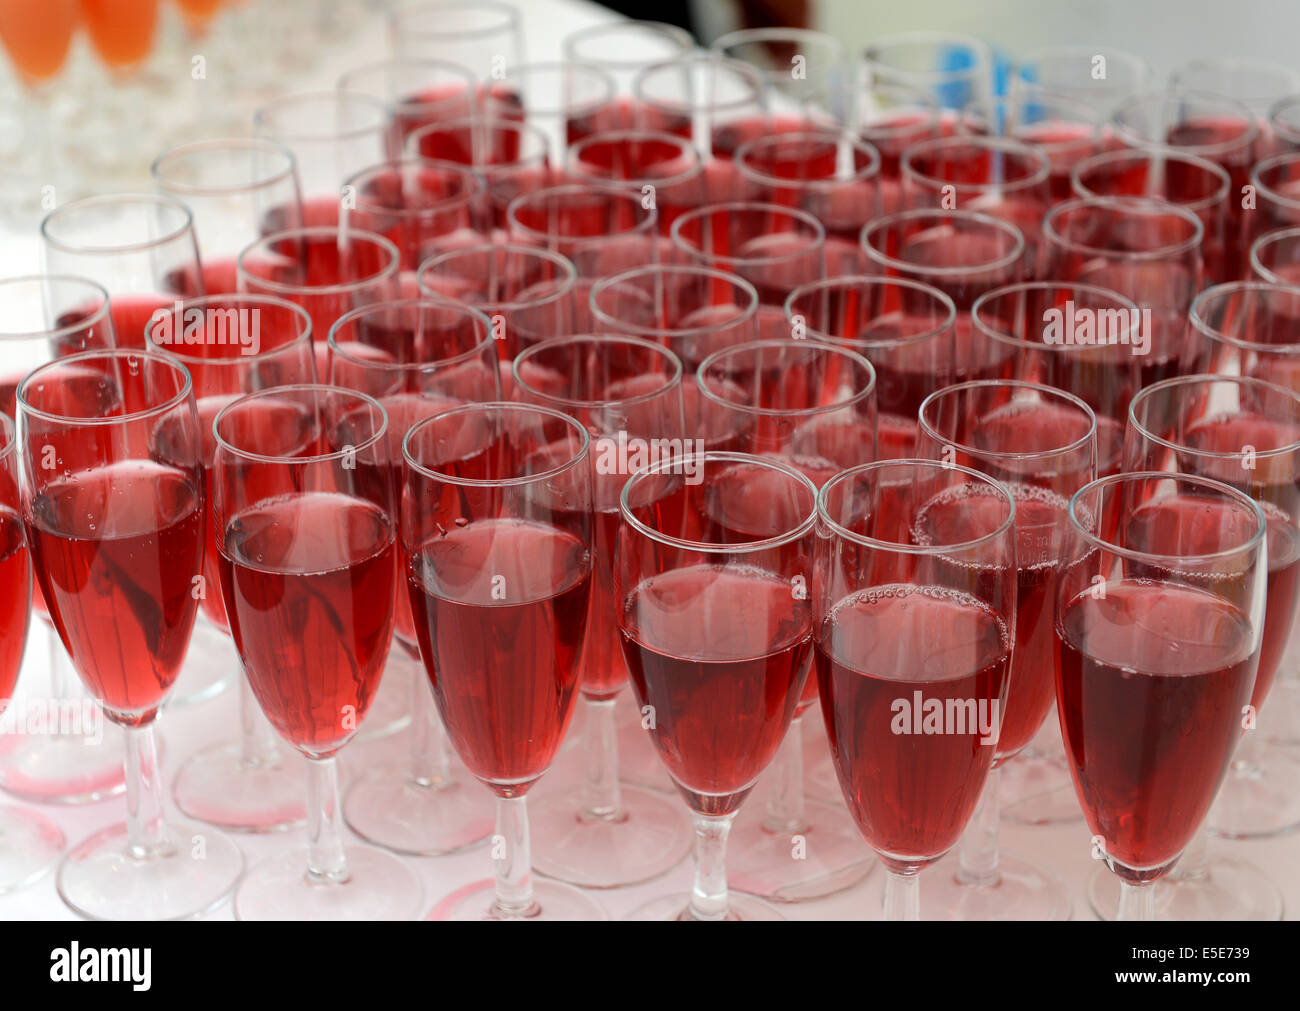 glass glasses pattern red wine fruit juice juices drinks catering Uk - Stock Image